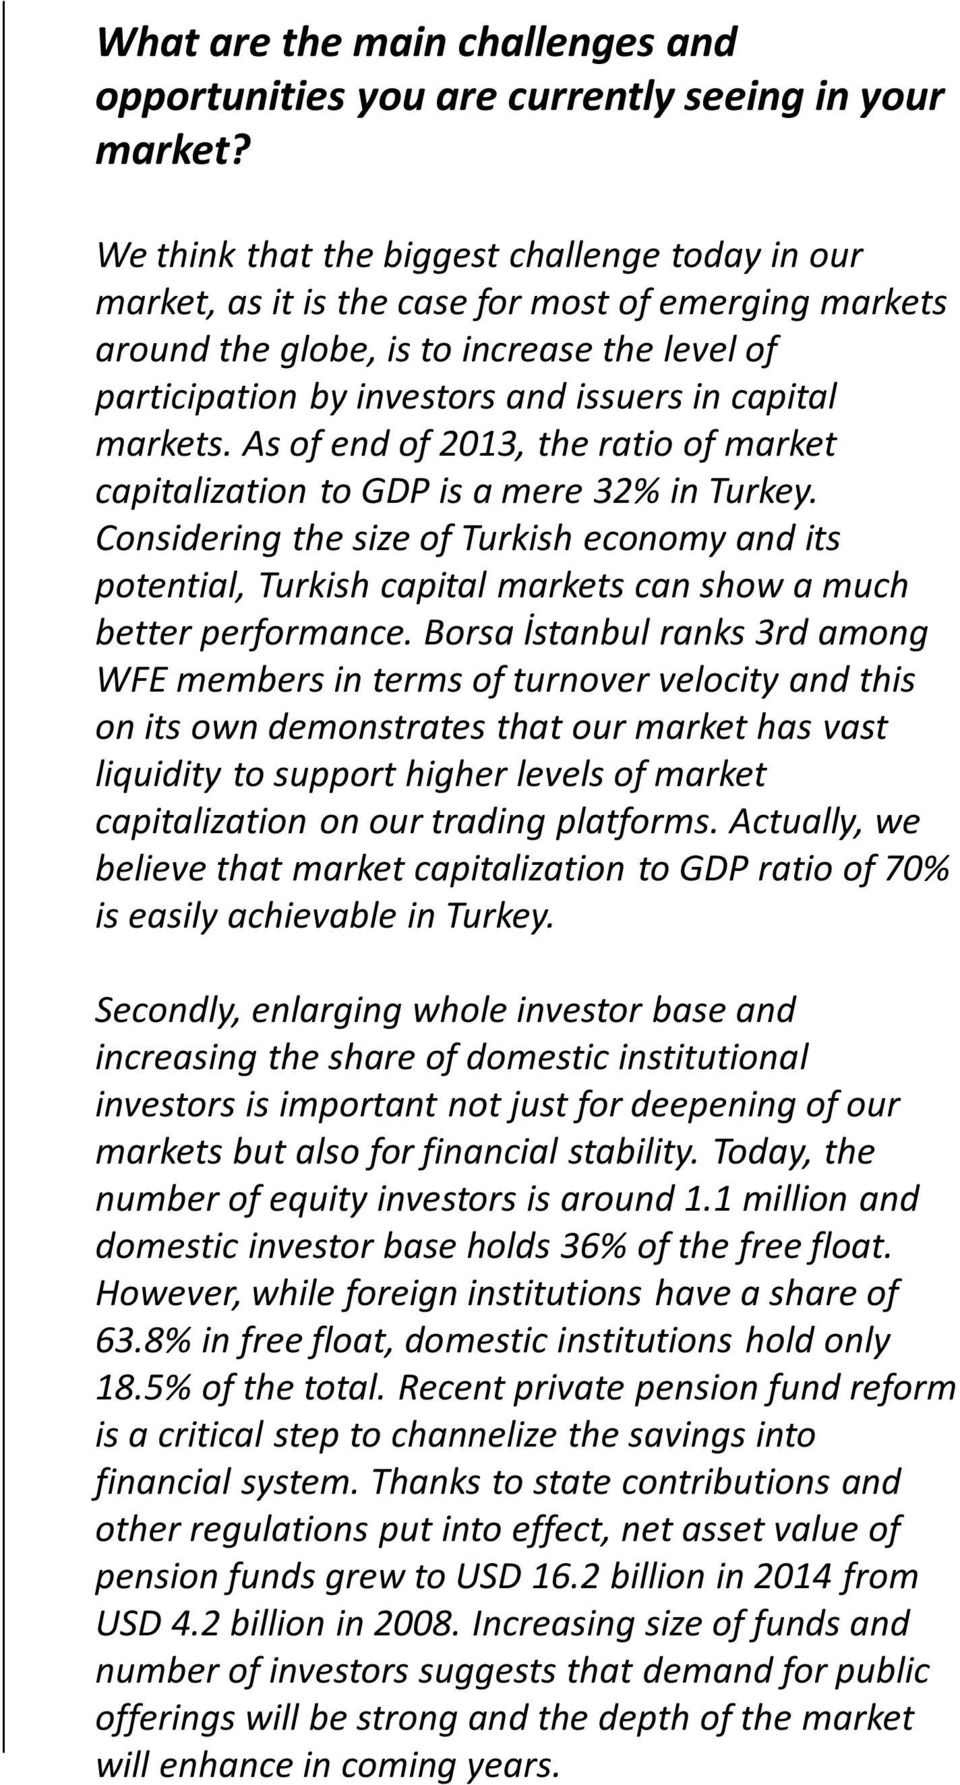 markets. As of end of 2013, the ratio of market capitalization to GDP is a mere 32% in Turkey.